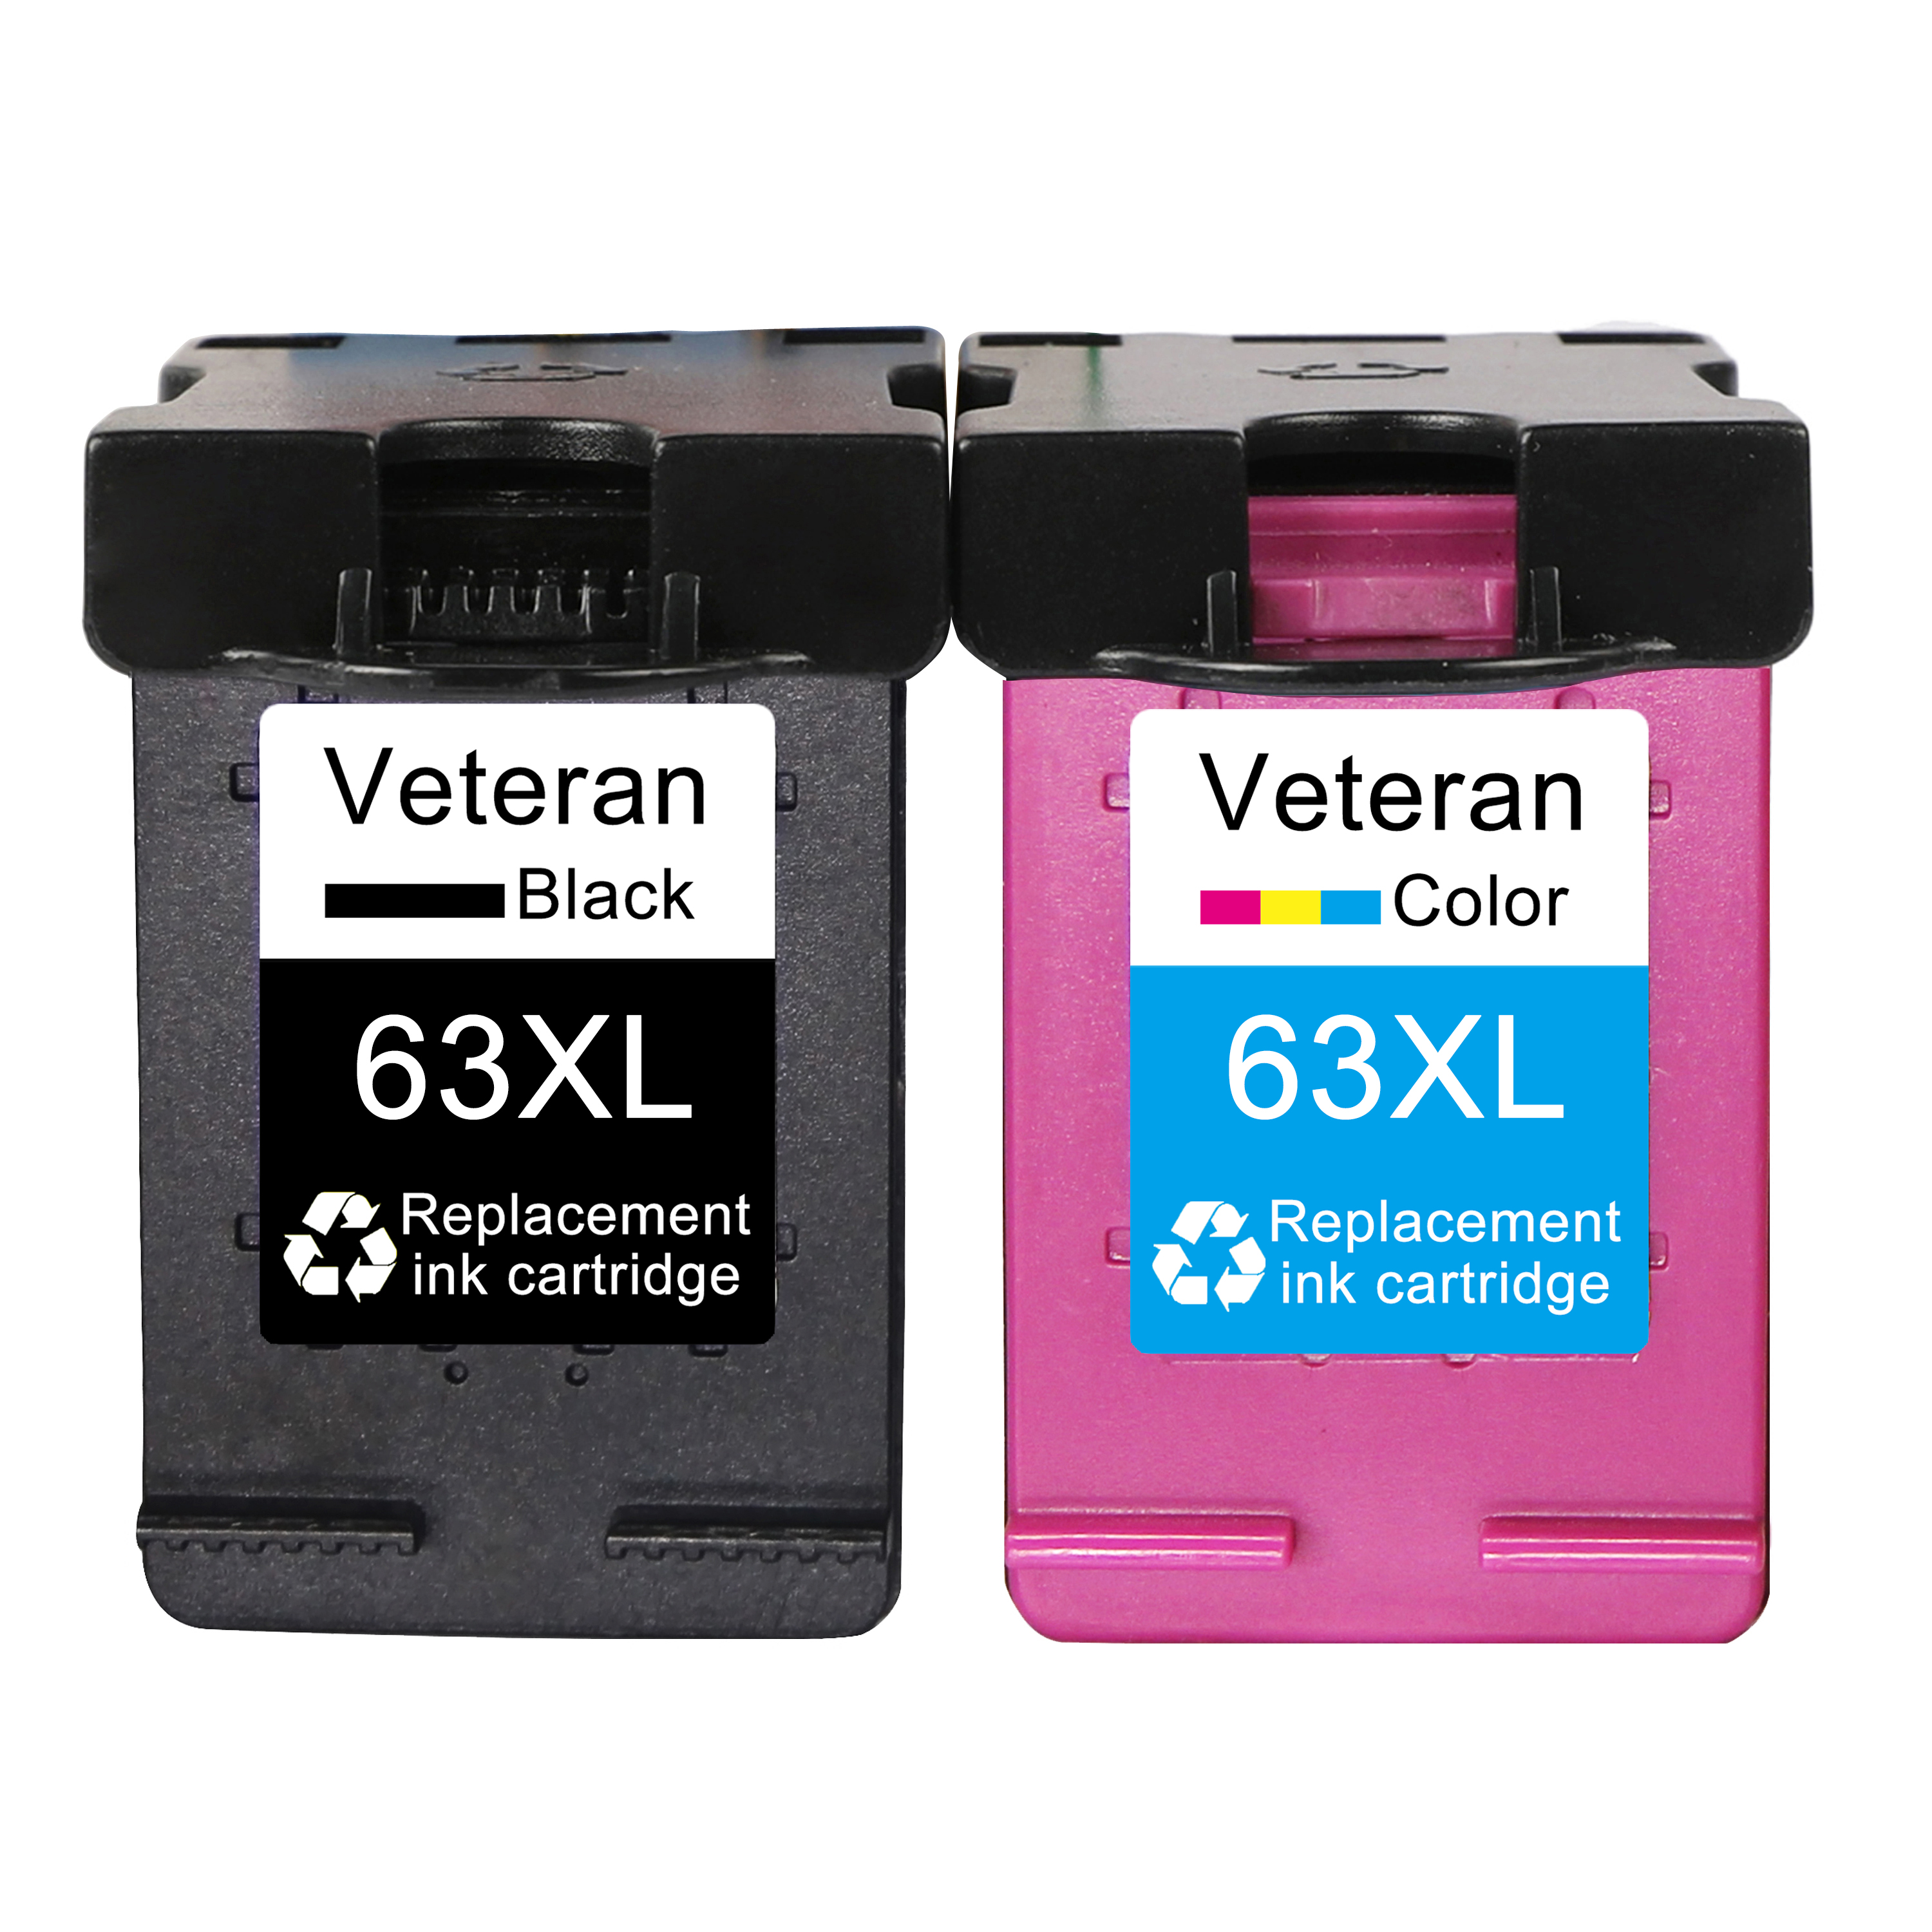 Veteran Cartridge Compatible 4250 2132 63XL Hp63 5220 2130 3630 Deskjet 5230 for 2131 title=